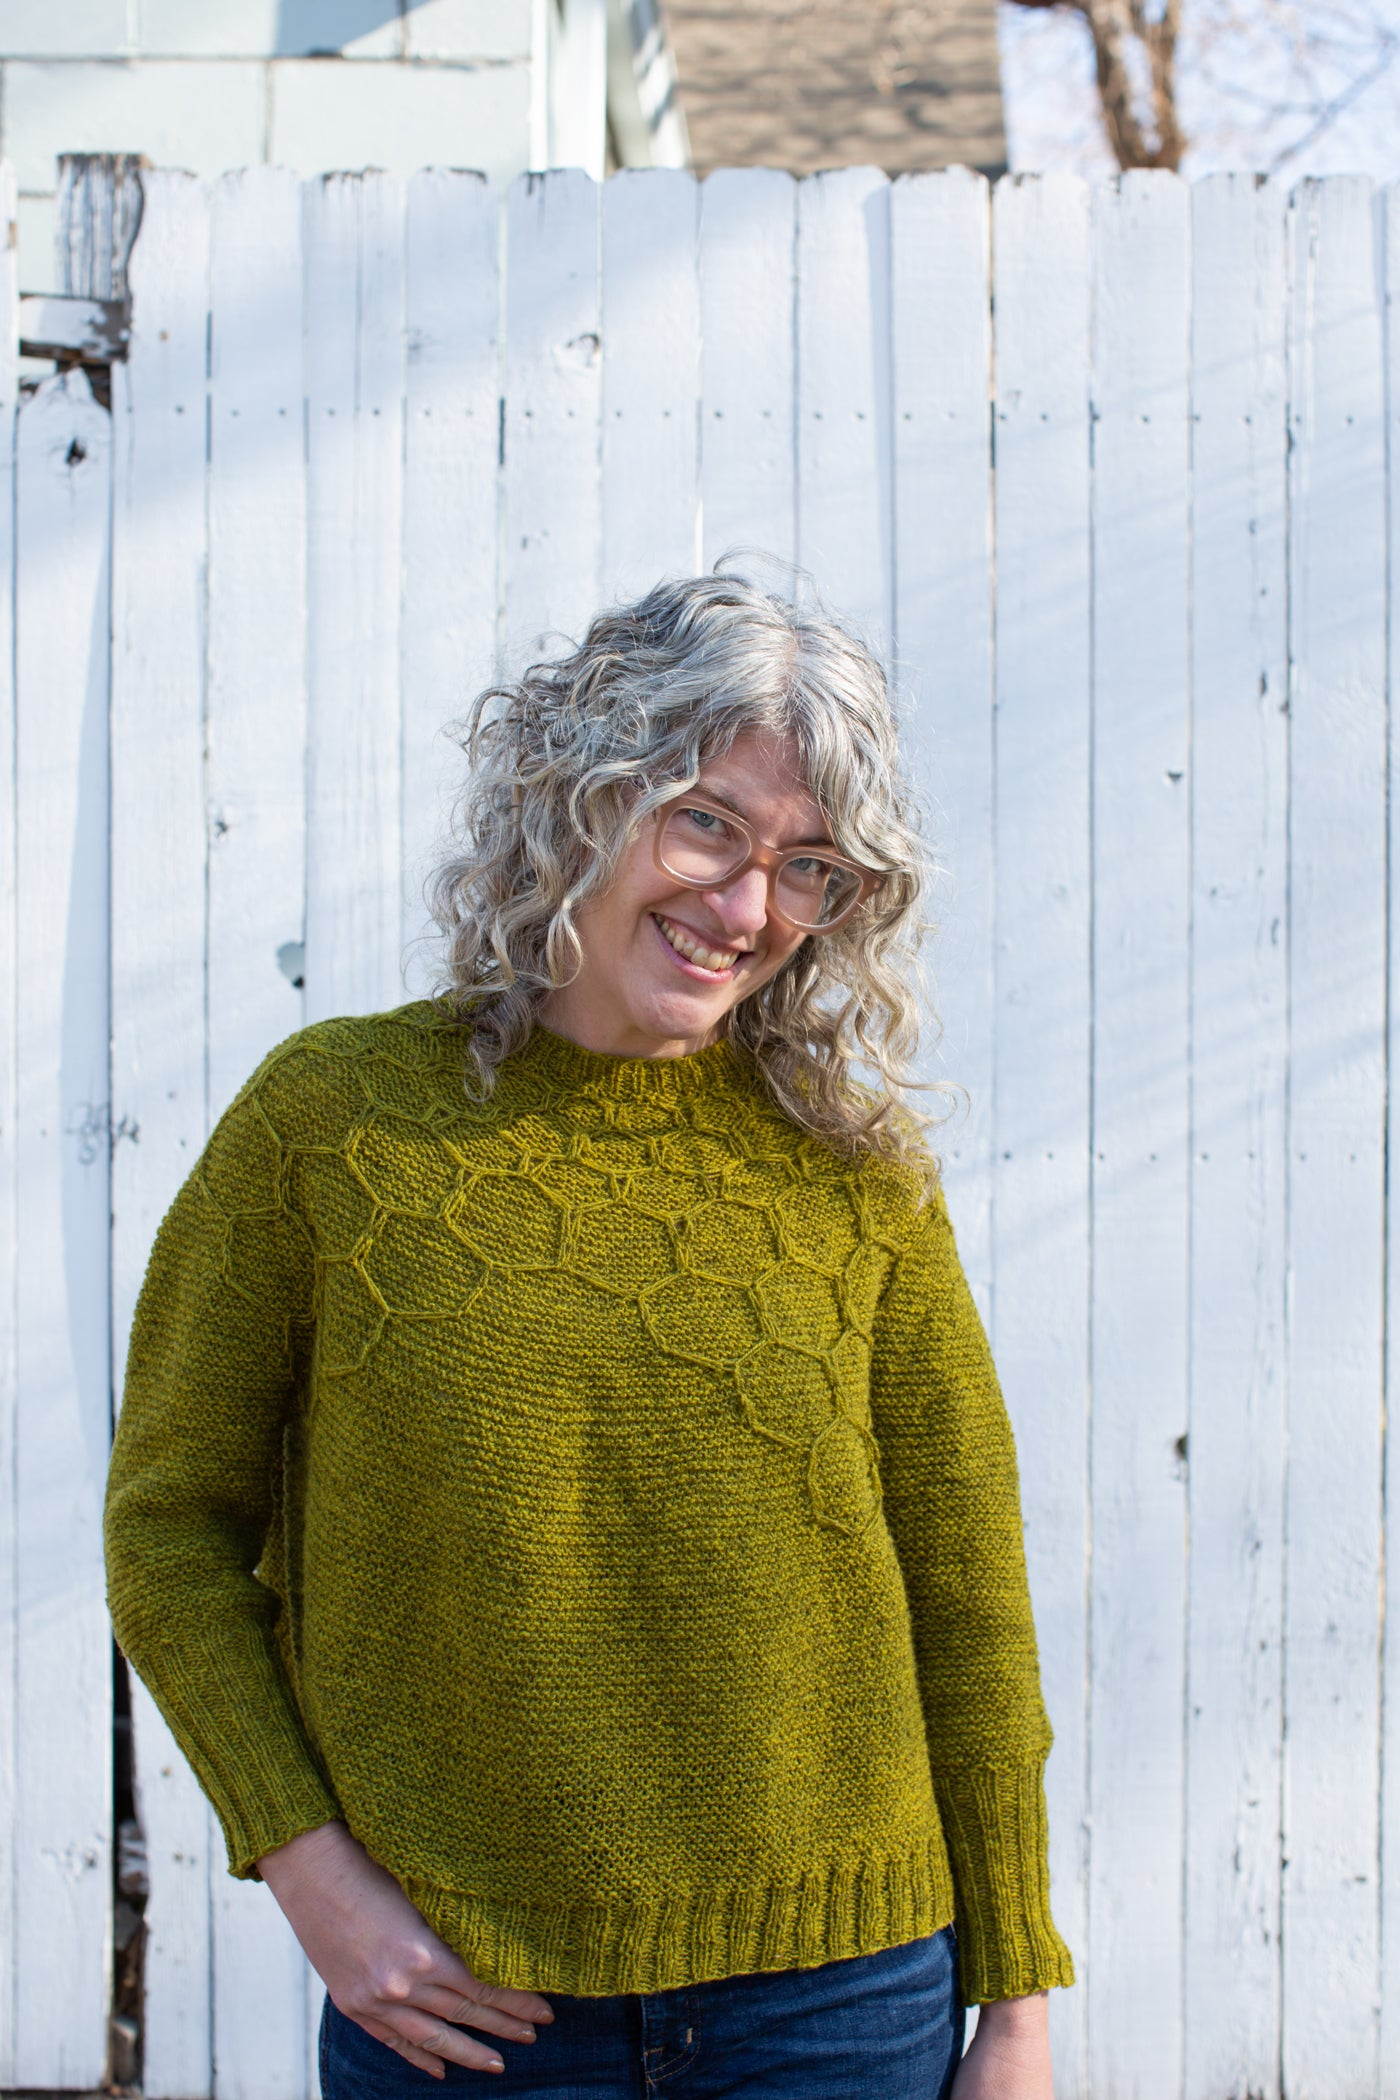 Jaime smiling, facing straight at the camera,  standing one hand in her jean pocket and the other to her side, showing a yellow-green knitted sweater and wearing dark jeans.  The sweater has a honeycomb design on top part of the sweater.  The background is a white fence.